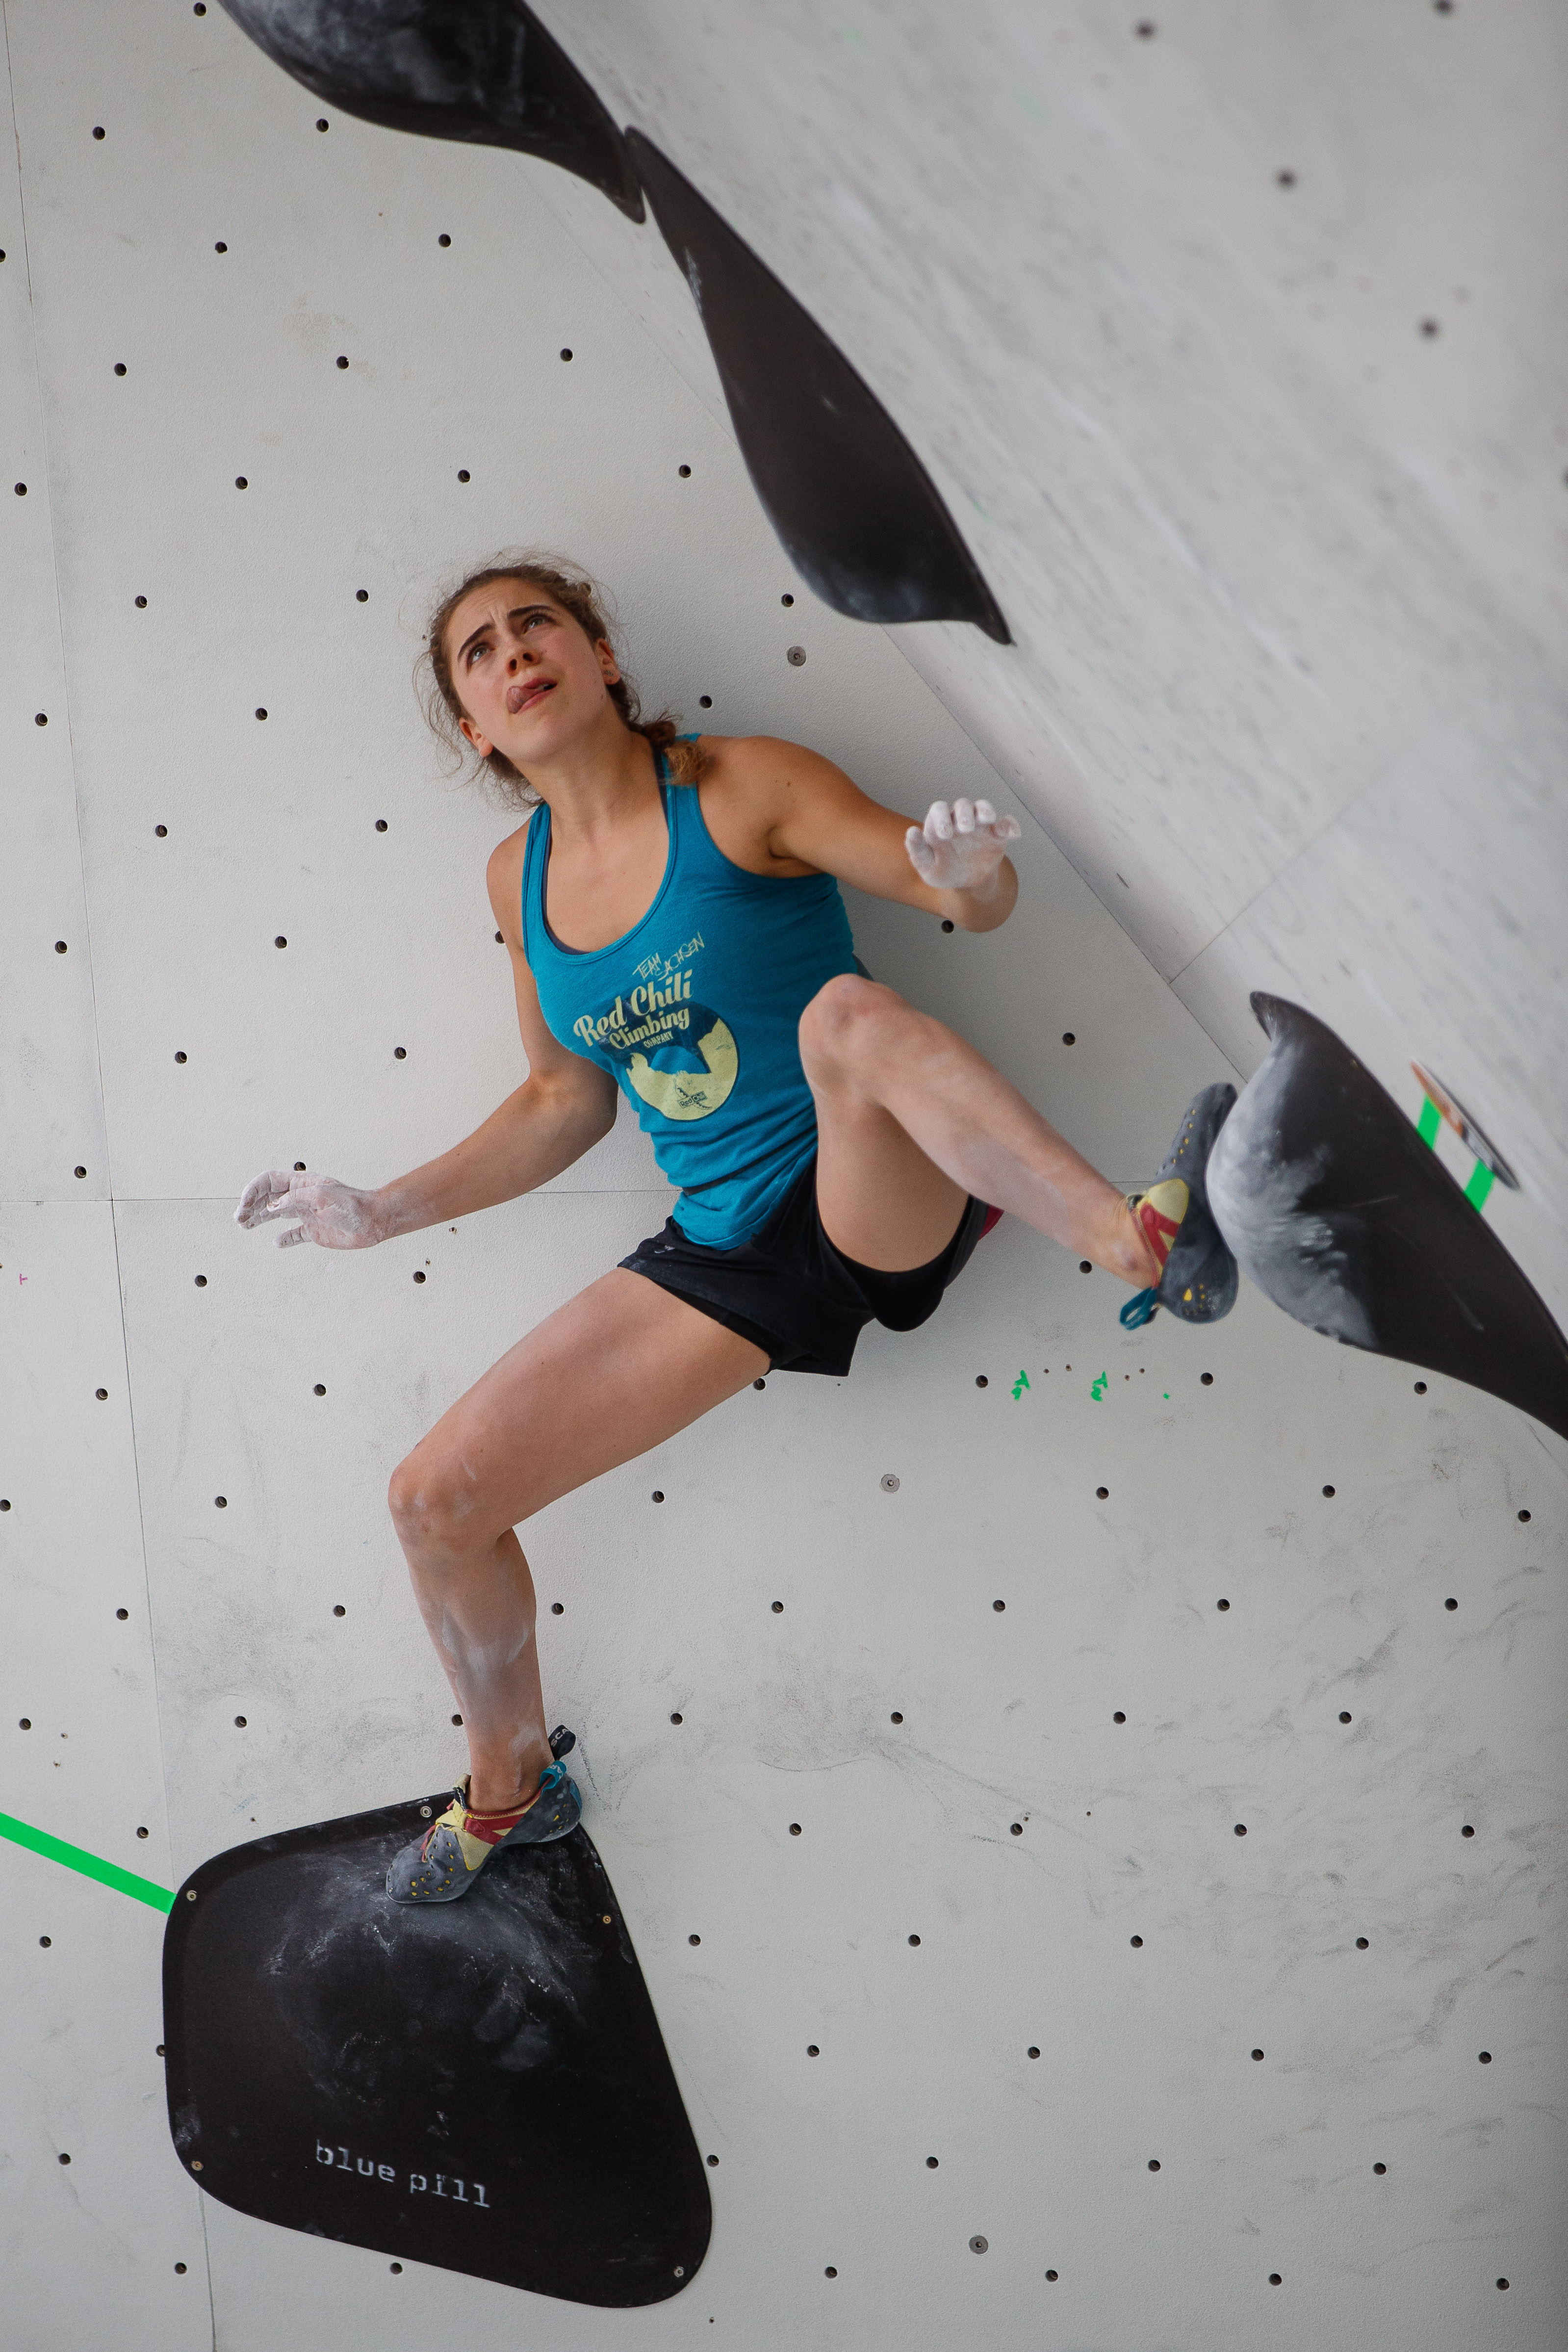 MKO Olympic Combined Augsburg Quaification Bouldern 049 Johanna Holfeld 2018 Copyright Marco Kost HR